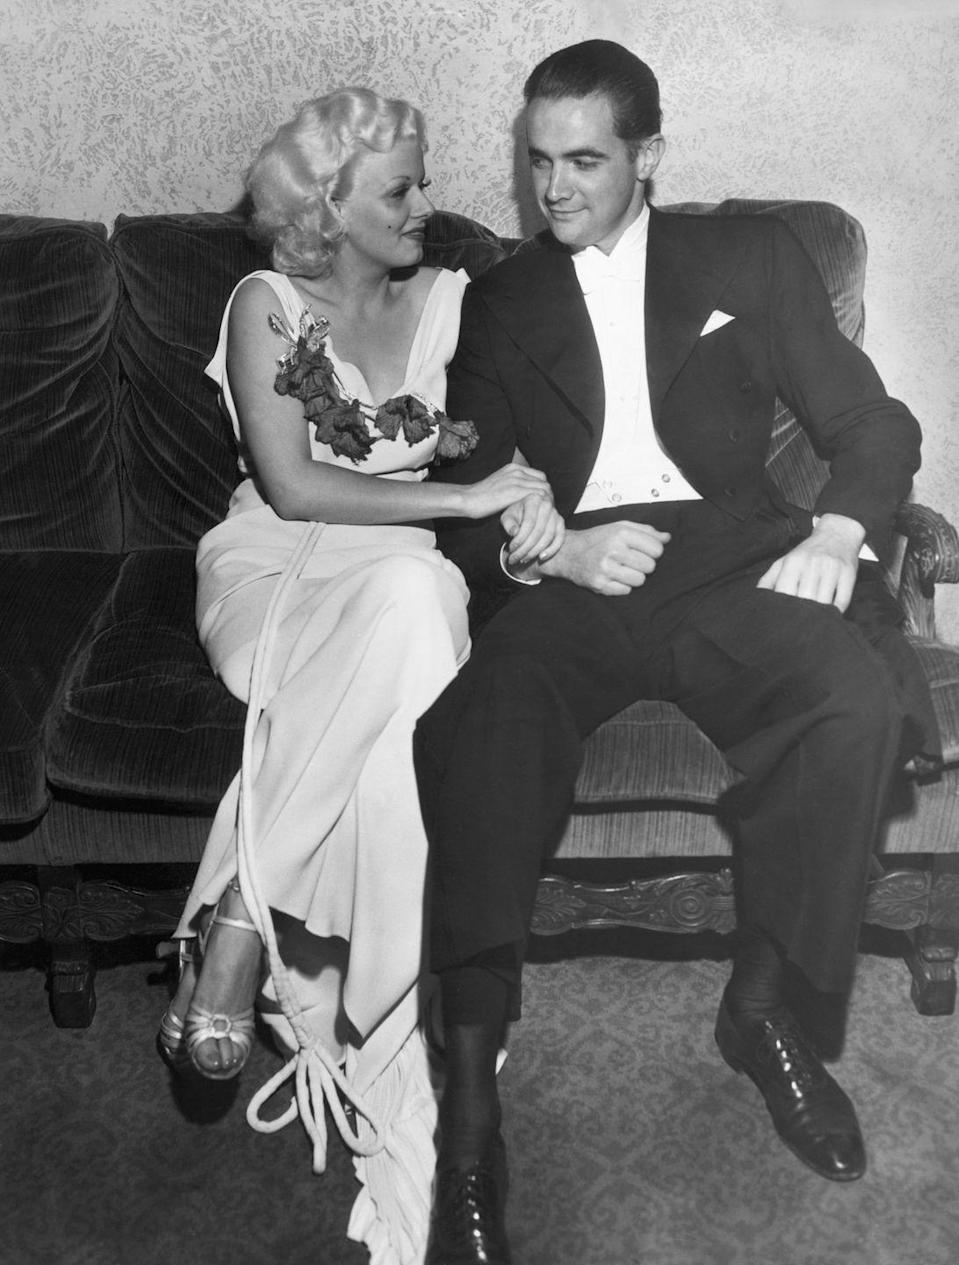 "<p>Jean Harlow was told that becoming a wife would alter her sex appeal, and, due to the morality clause in her contract with MGM, the studio was allowed to <a href=""https://www.ranker.com/list/old-hollywood-studio/anncasano"" rel=""nofollow noopener"" target=""_blank"" data-ylk=""slk:deny her marriage to William Powell"" class=""link rapid-noclick-resp"">deny her marriage to William Powell</a>. </p>"